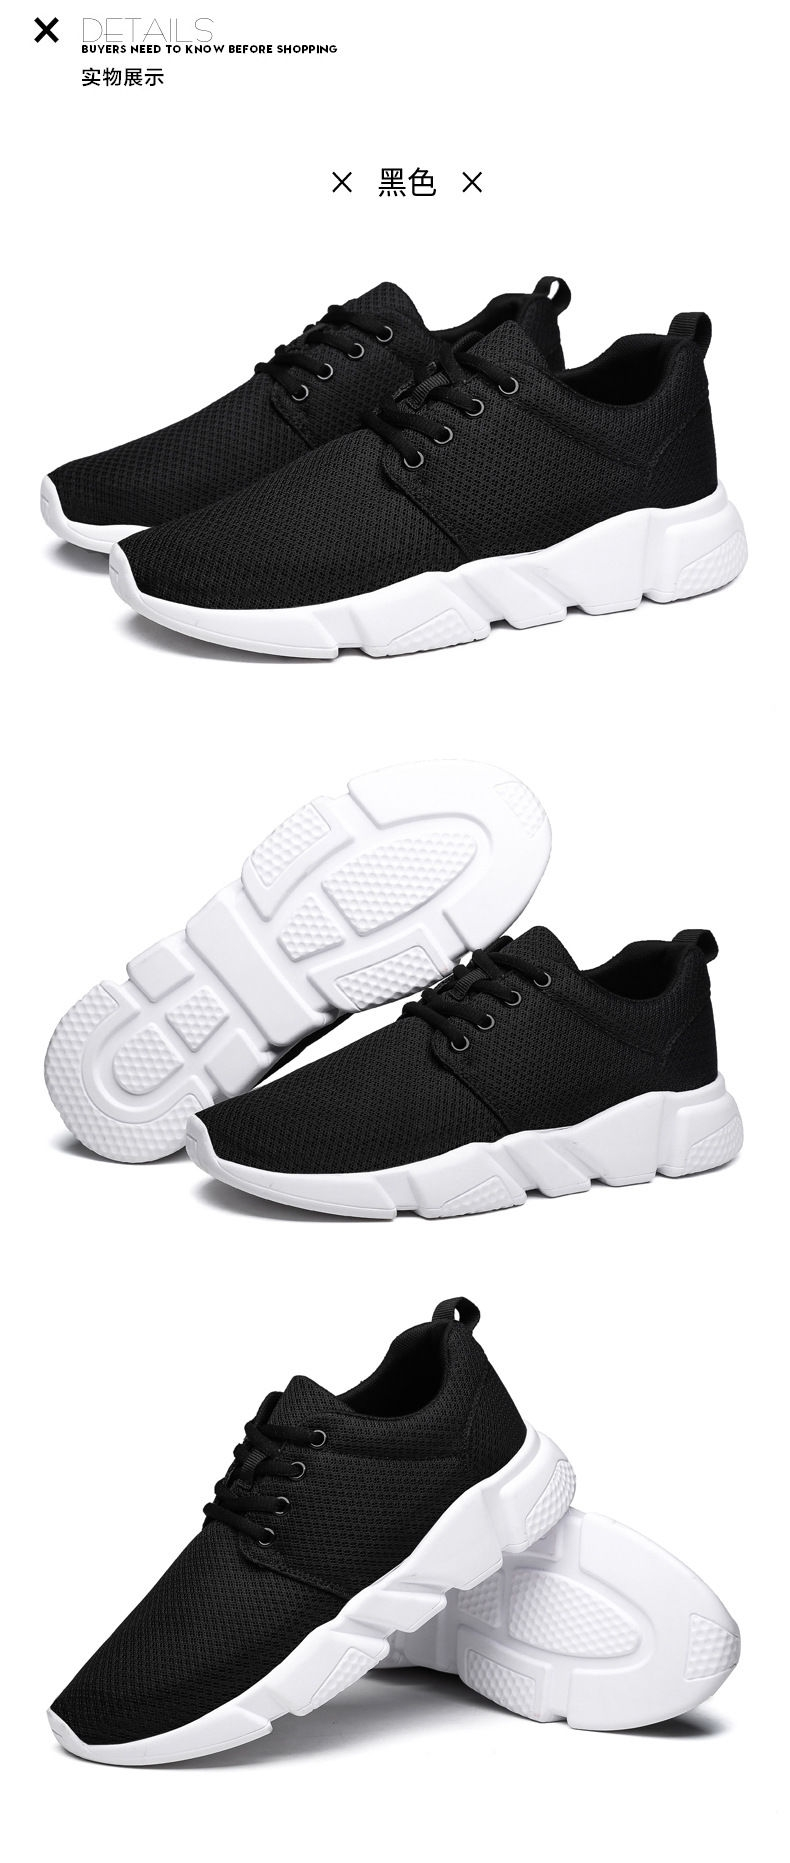 Fashion 2017 New Air Cushion Running Shoes For Men & Women Sport Shoes Men Sneaker Slip On   Black price in Nigeria